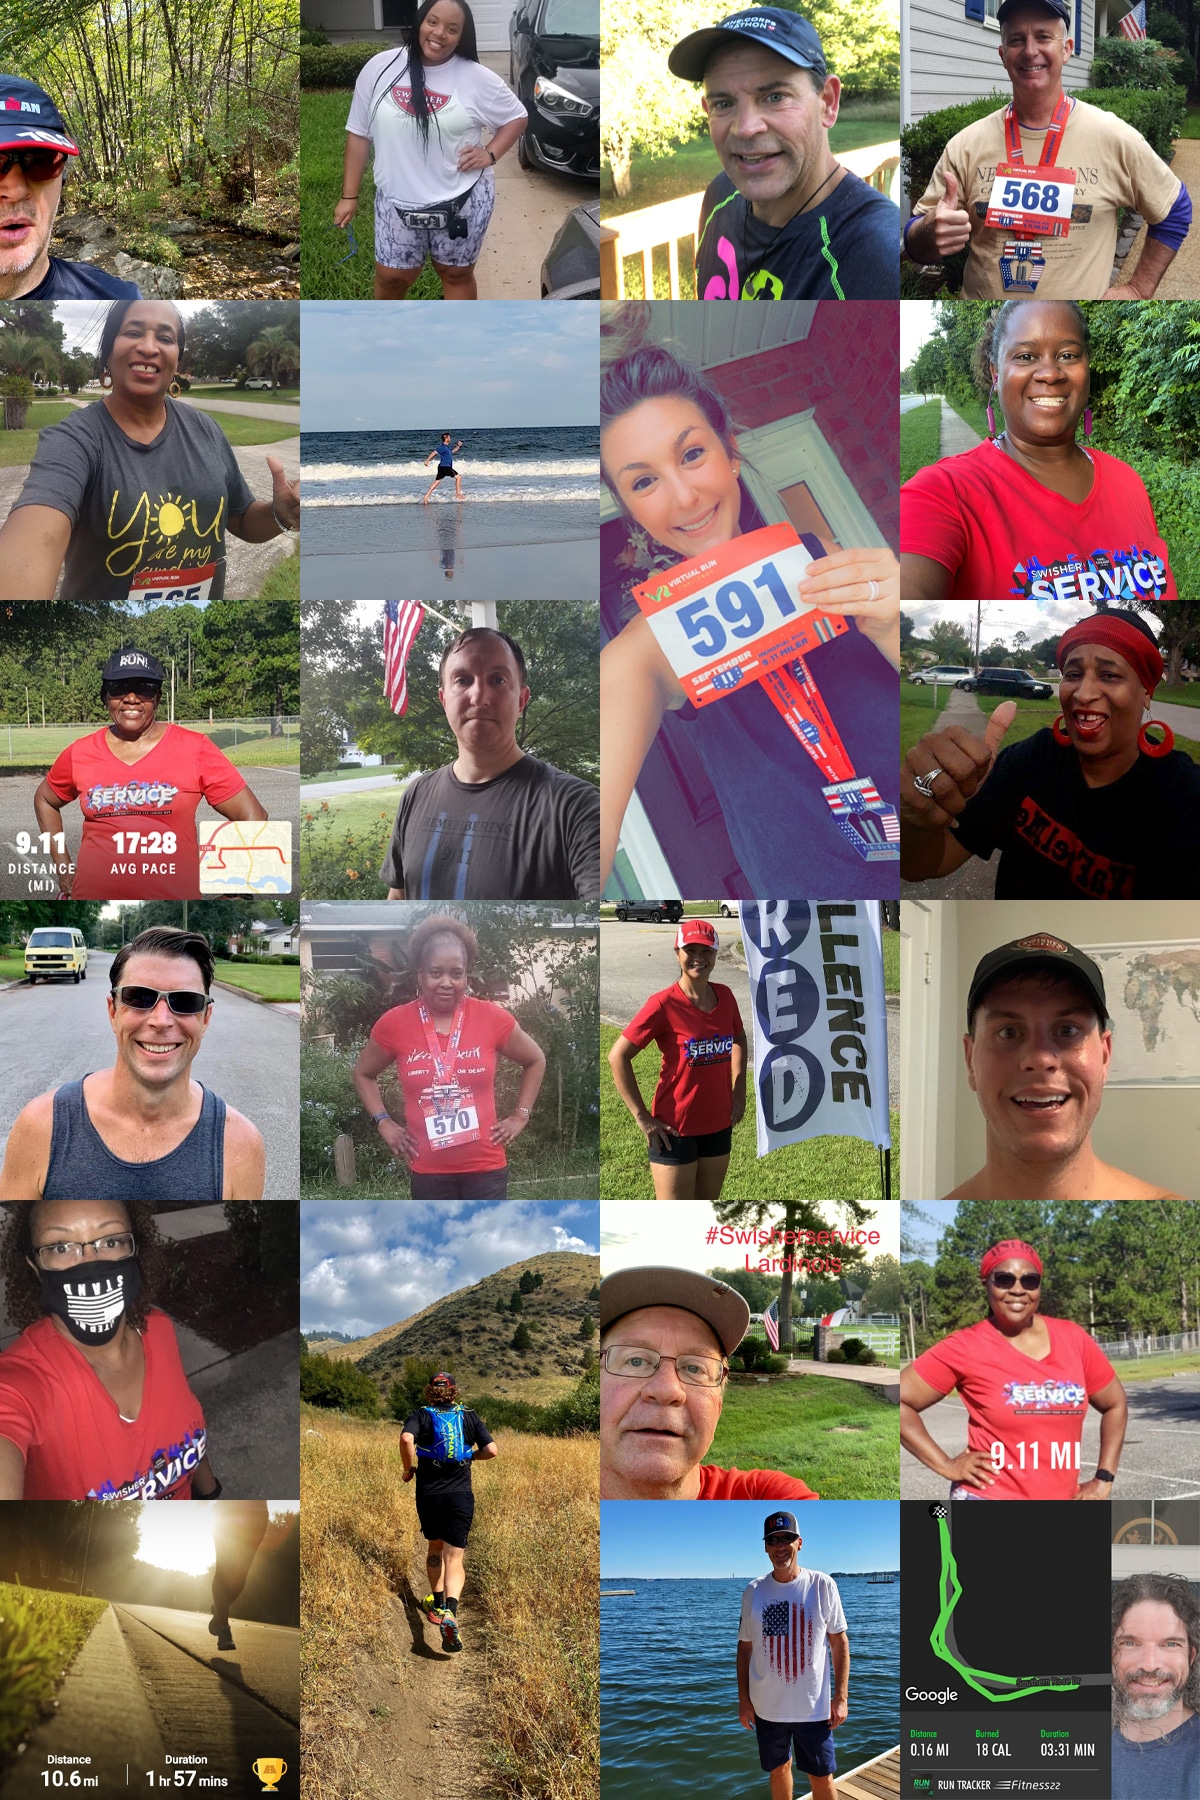 Image collection of runners in the 9/11 Virtual Run Challenge